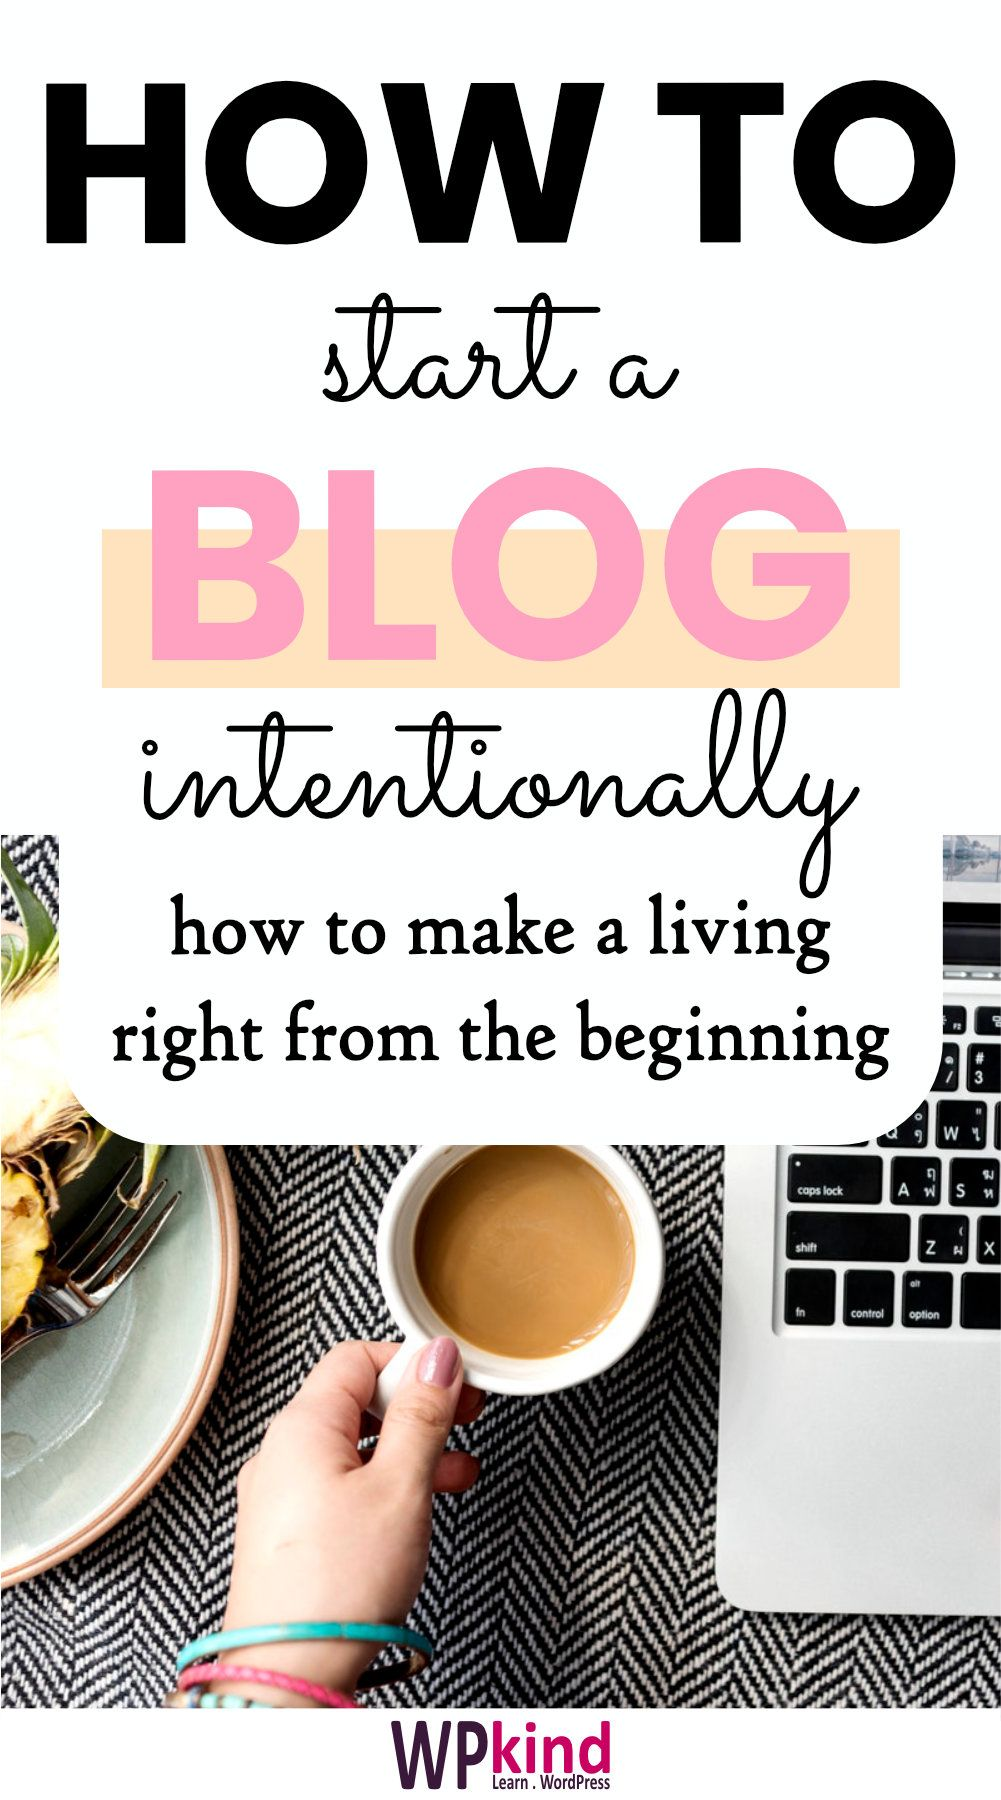 How to start a money-making blog and get traffic immediately. This is a complete guide on how to start a blog on WordPress, through from having idea to getting traffic to your new blog. Start your blog the right way with my easy to follow guide for complete beginners. #startablog #bloggingtips #bloggingforbeginners #bloggingformoney #wordpresstips #wordpresstutorials